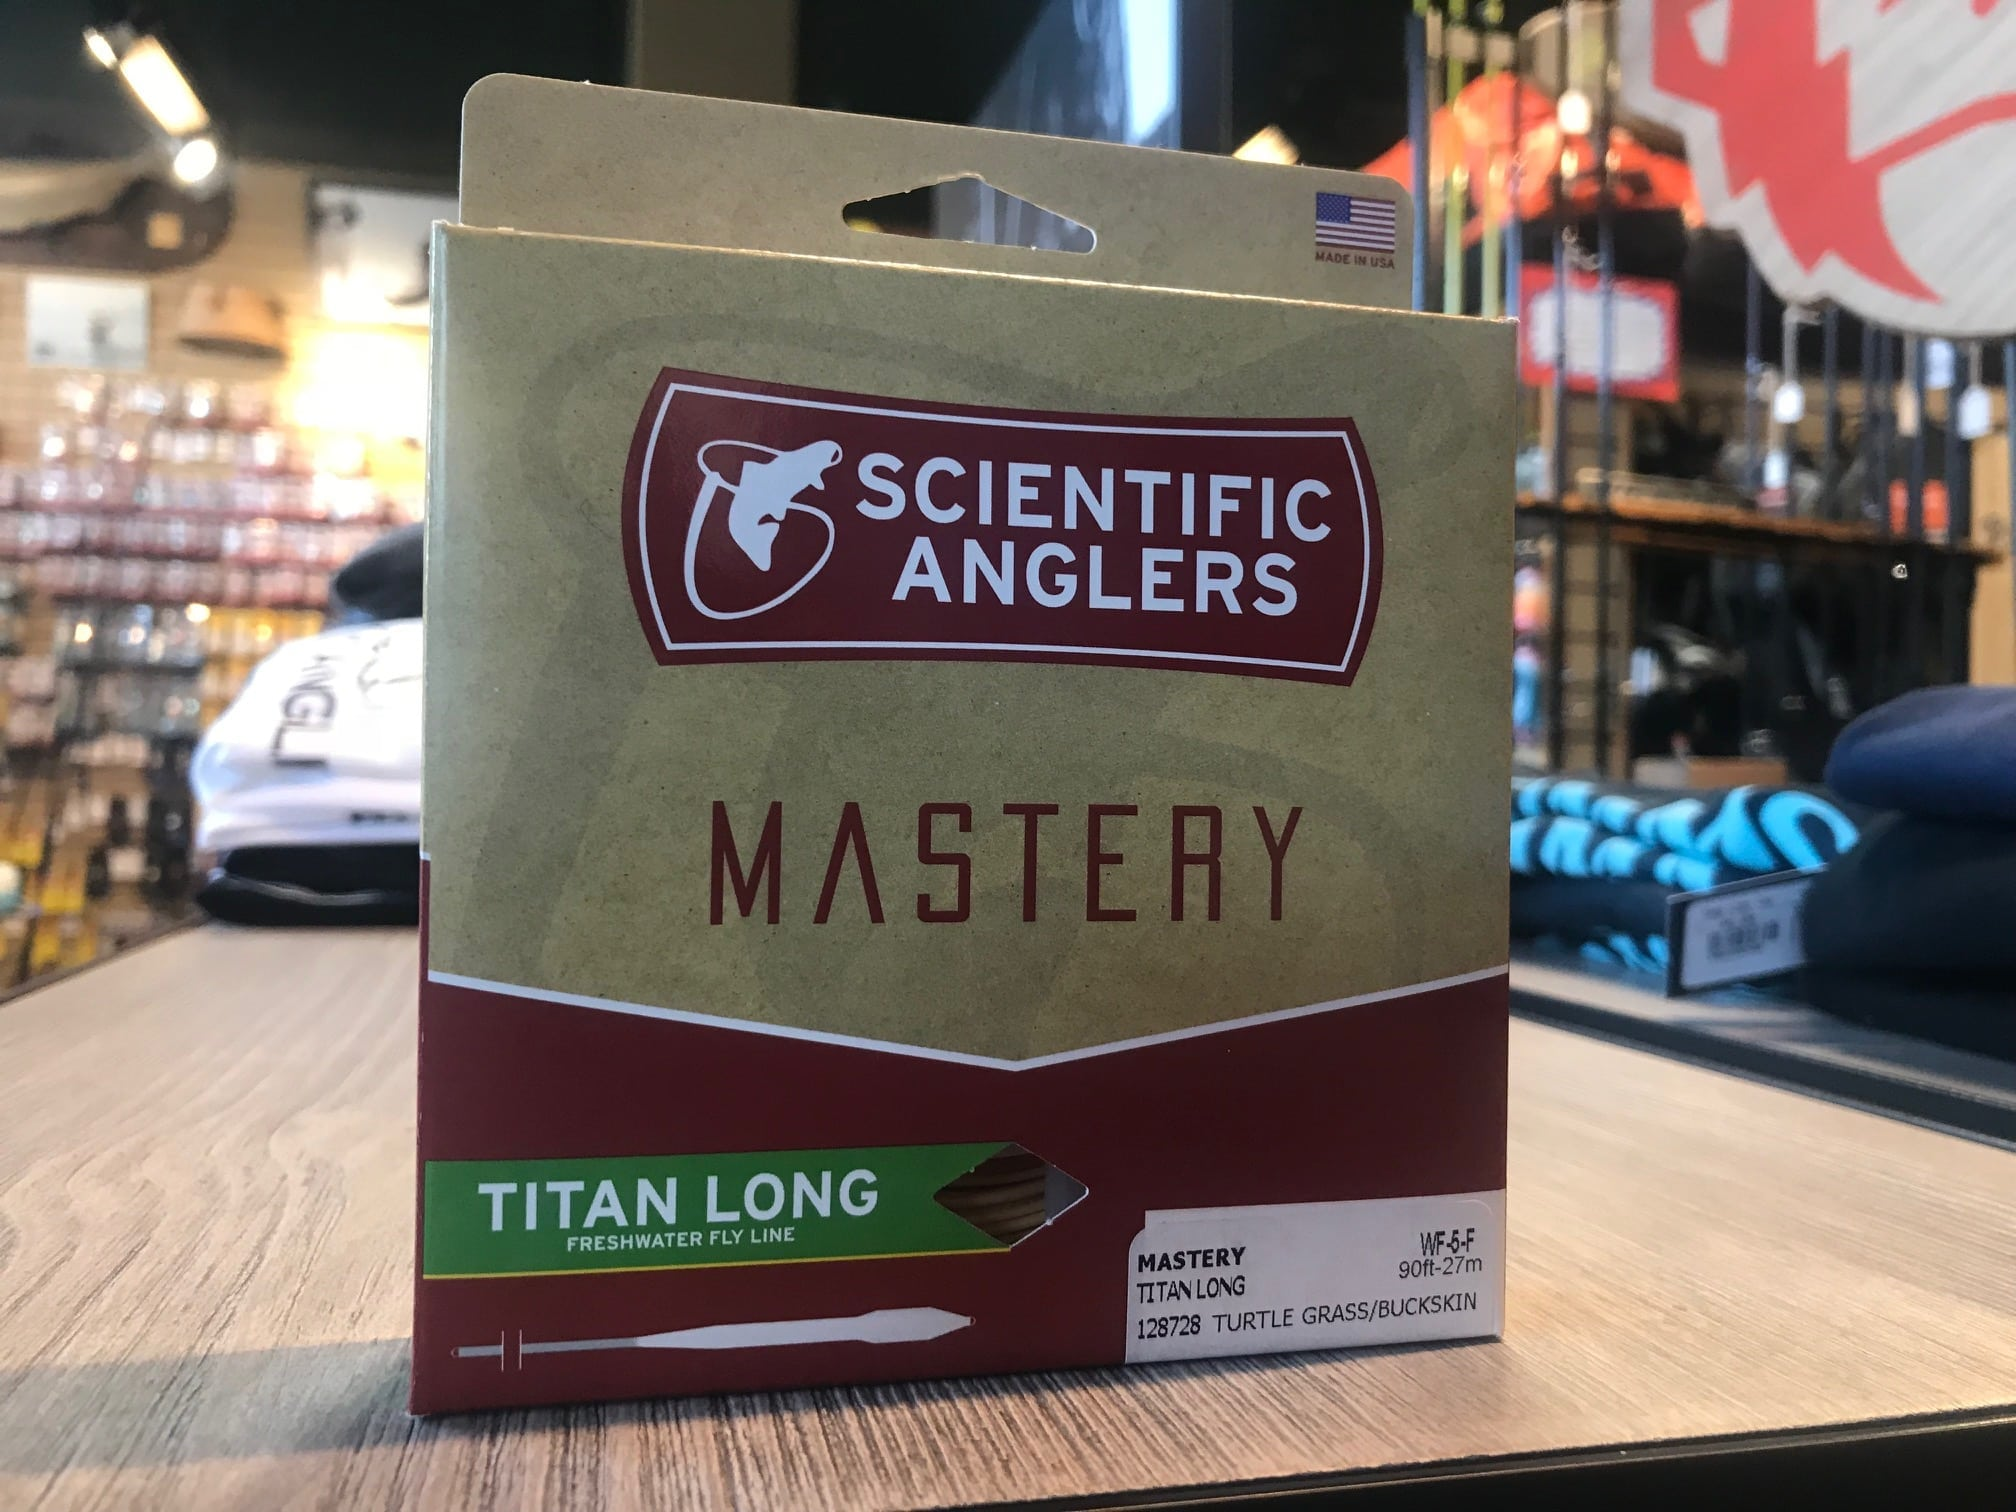 Scientific_Anglers_Titan_Long_Fly_Line